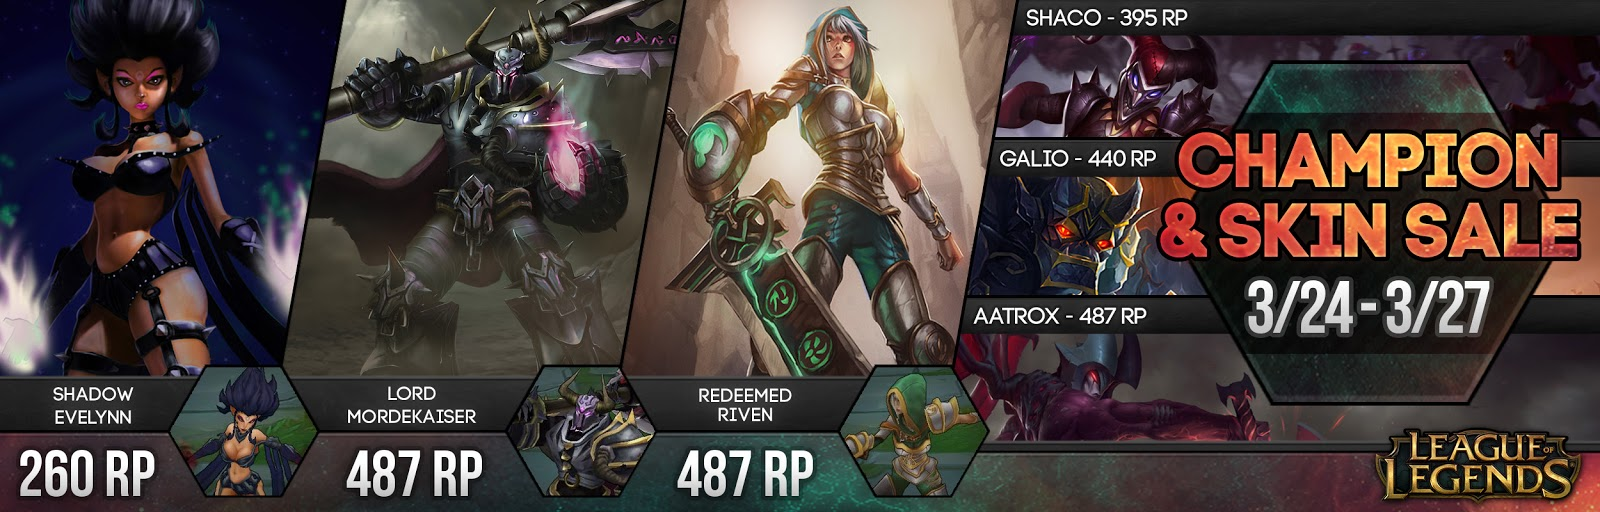 Surrender At 20 Champion And Skin Sale 324 327